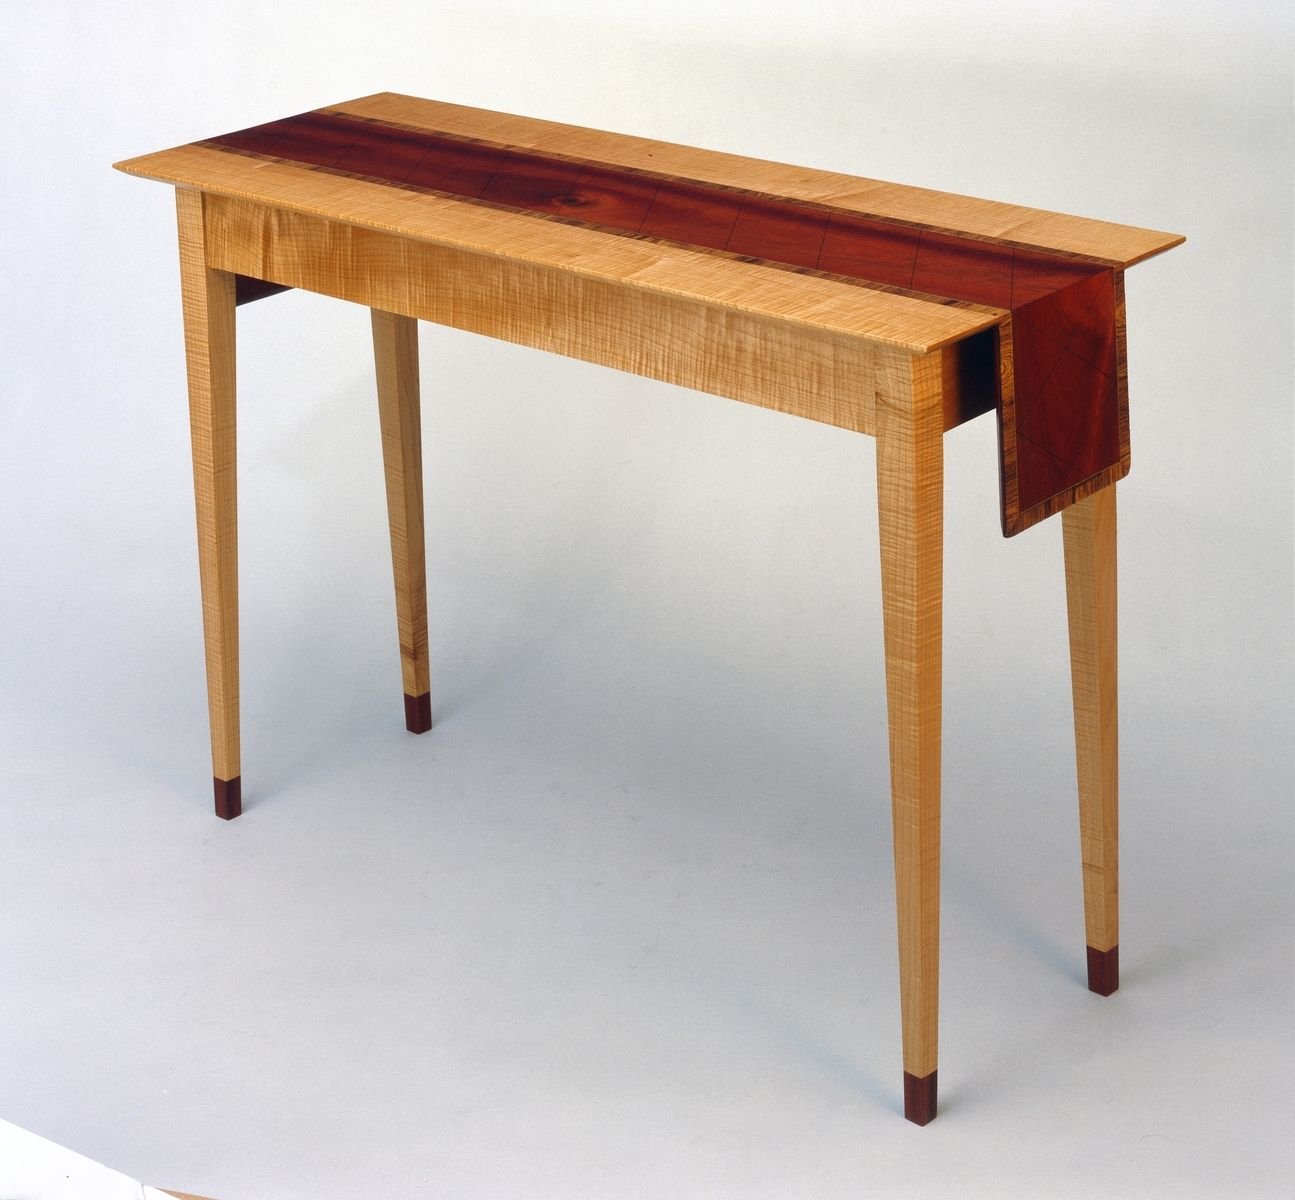 Childrens Bedroom Ideas Hand Crafted Hallway Table With Wooden Table Cloth Runner